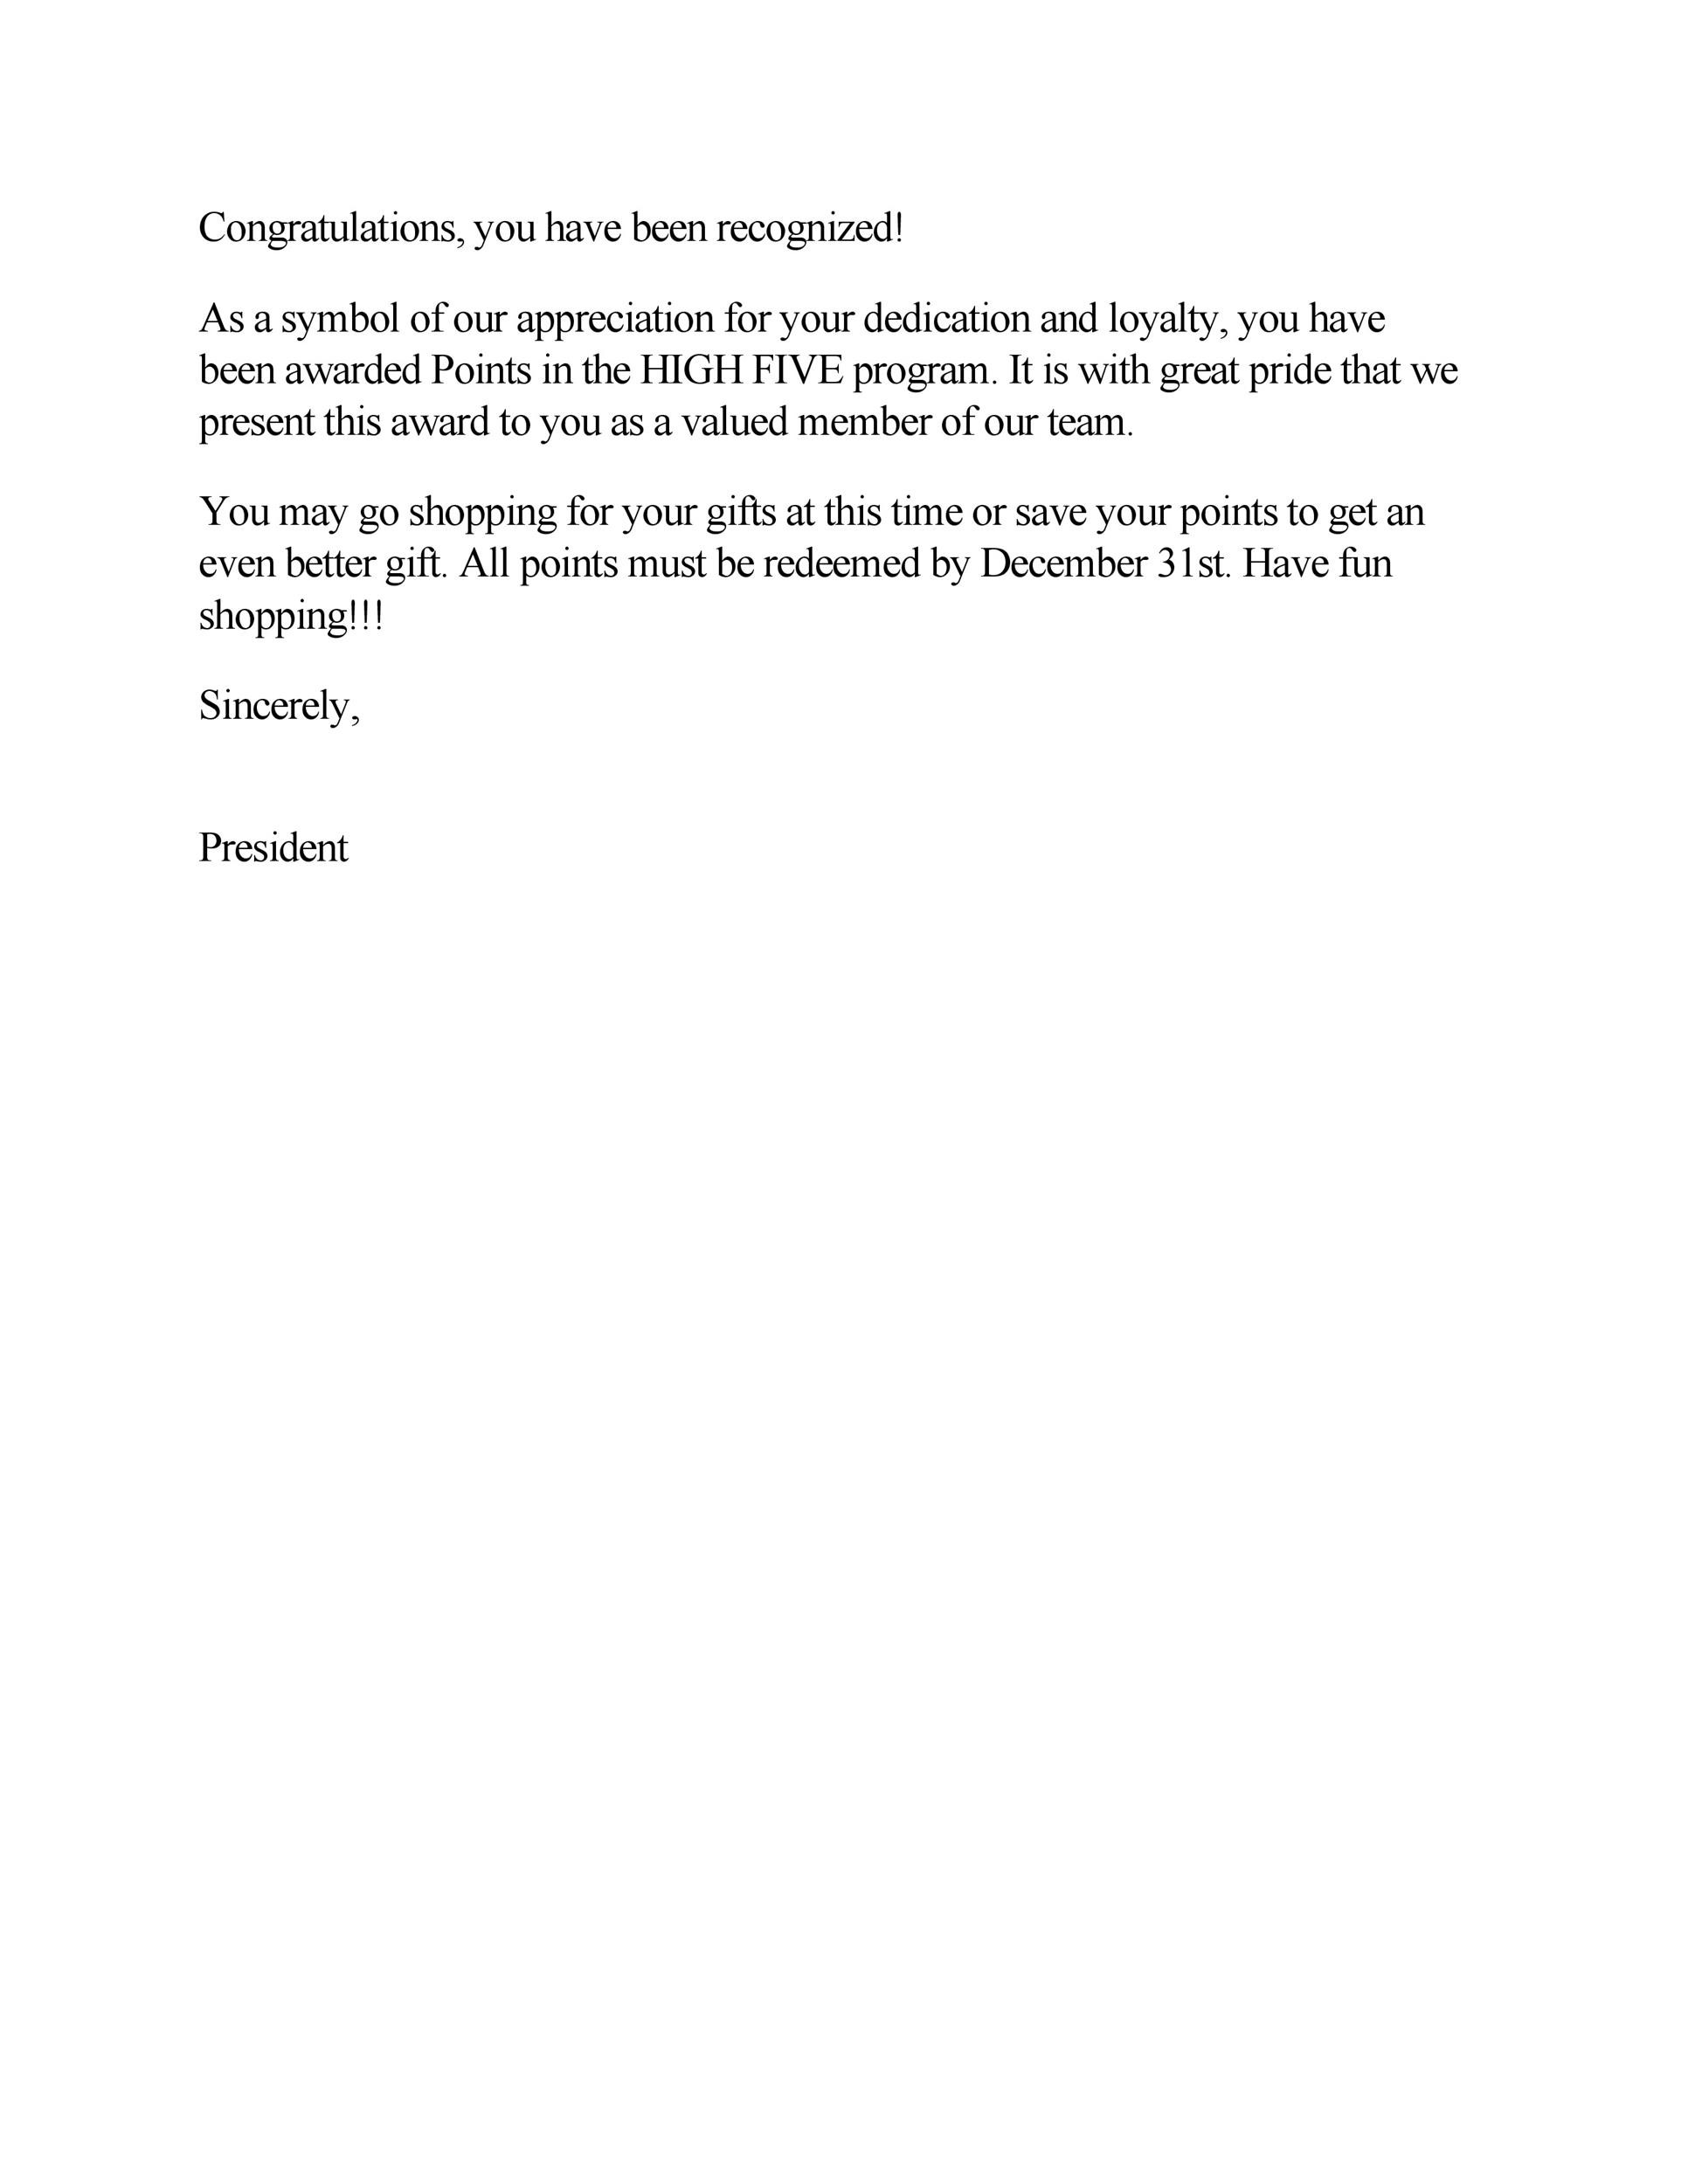 Free recognition letter 13